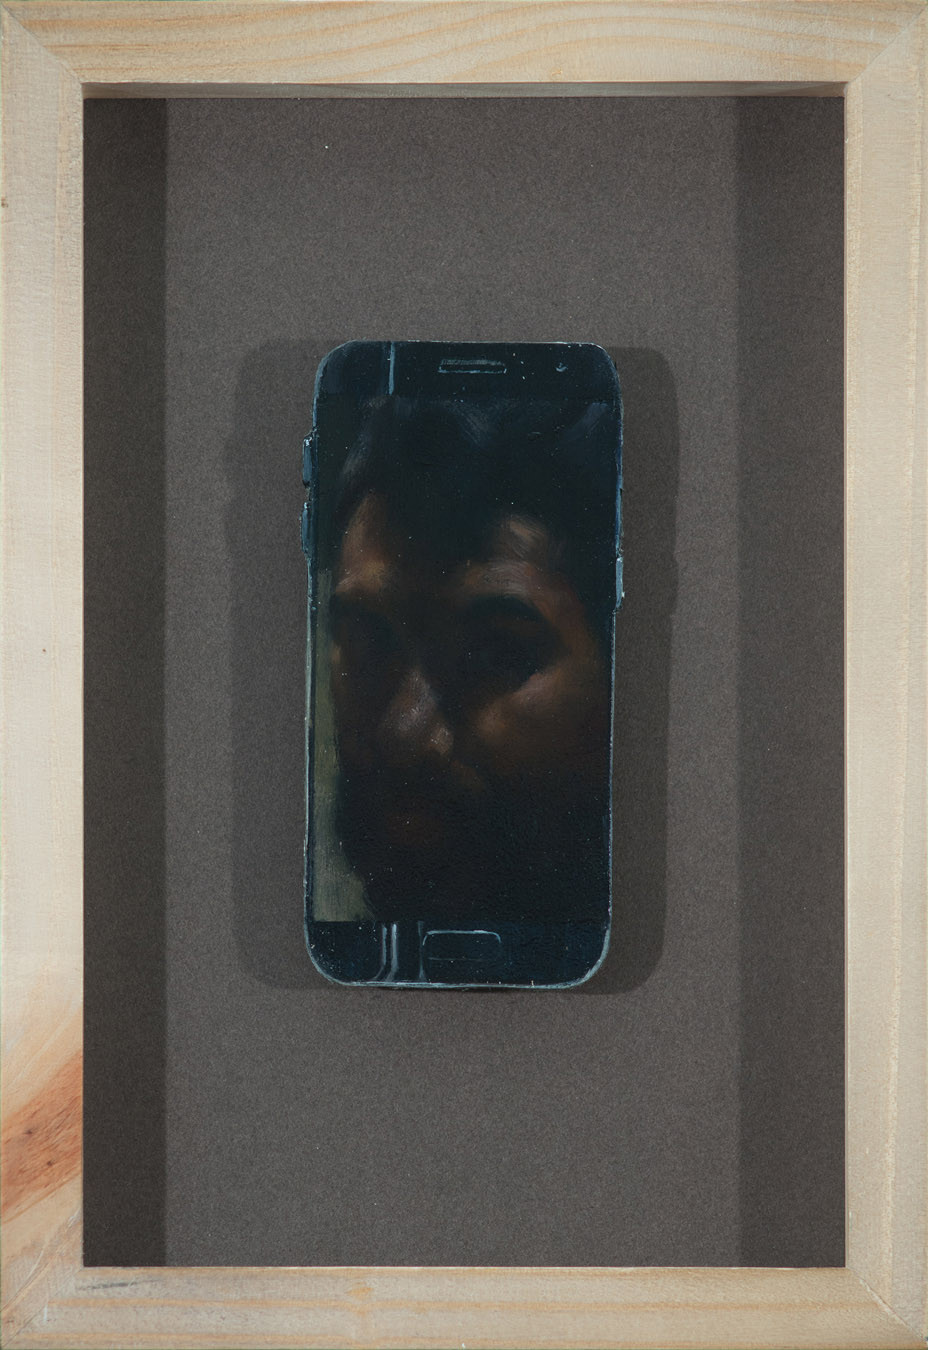 self portrait on phone shaped panel